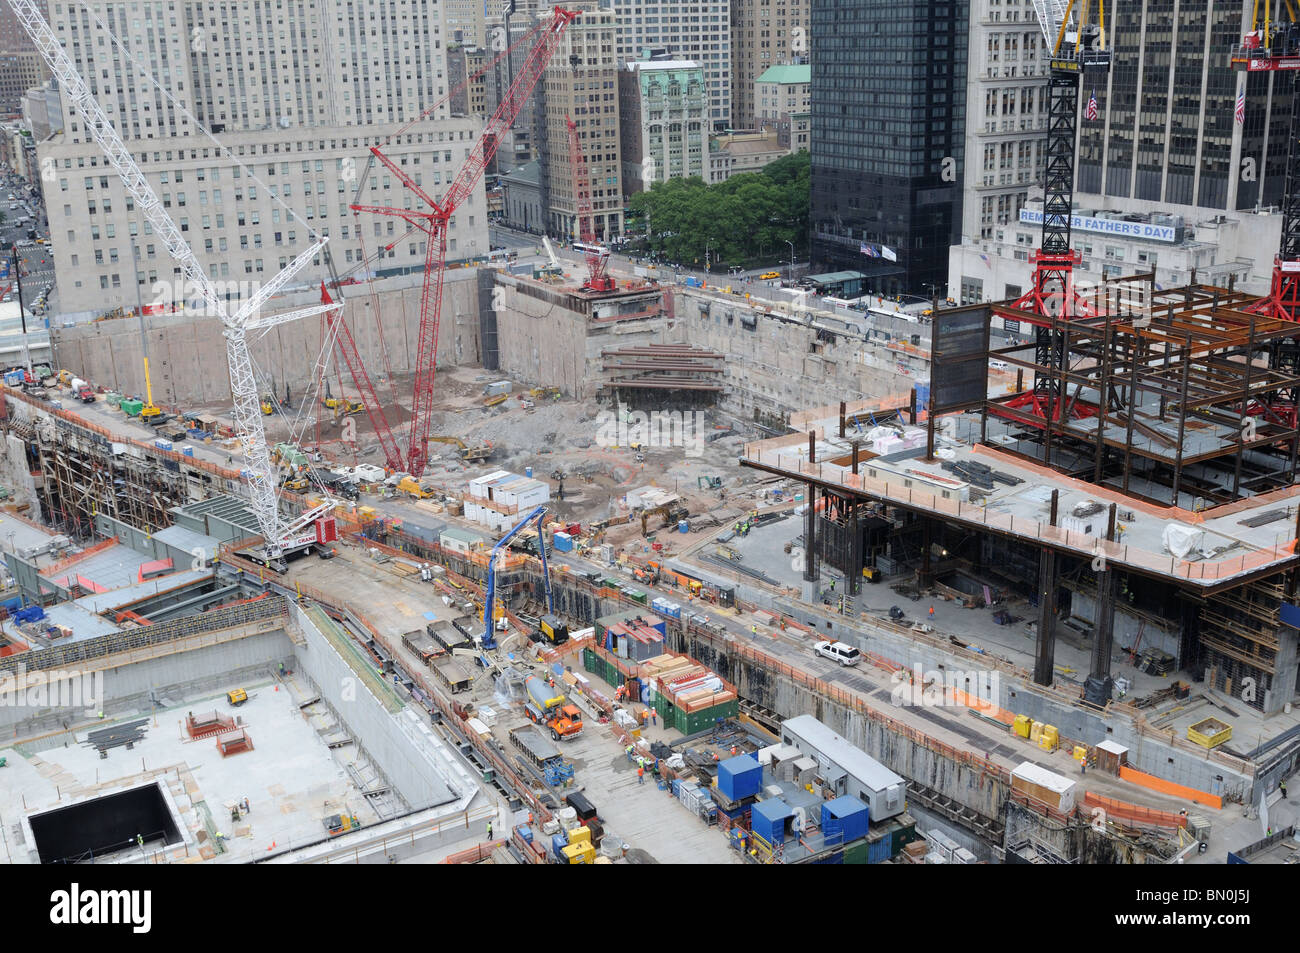 The World Trade Center construction site. Tower 4 is rising in the foreground. June 9, 2010 Stock Photo